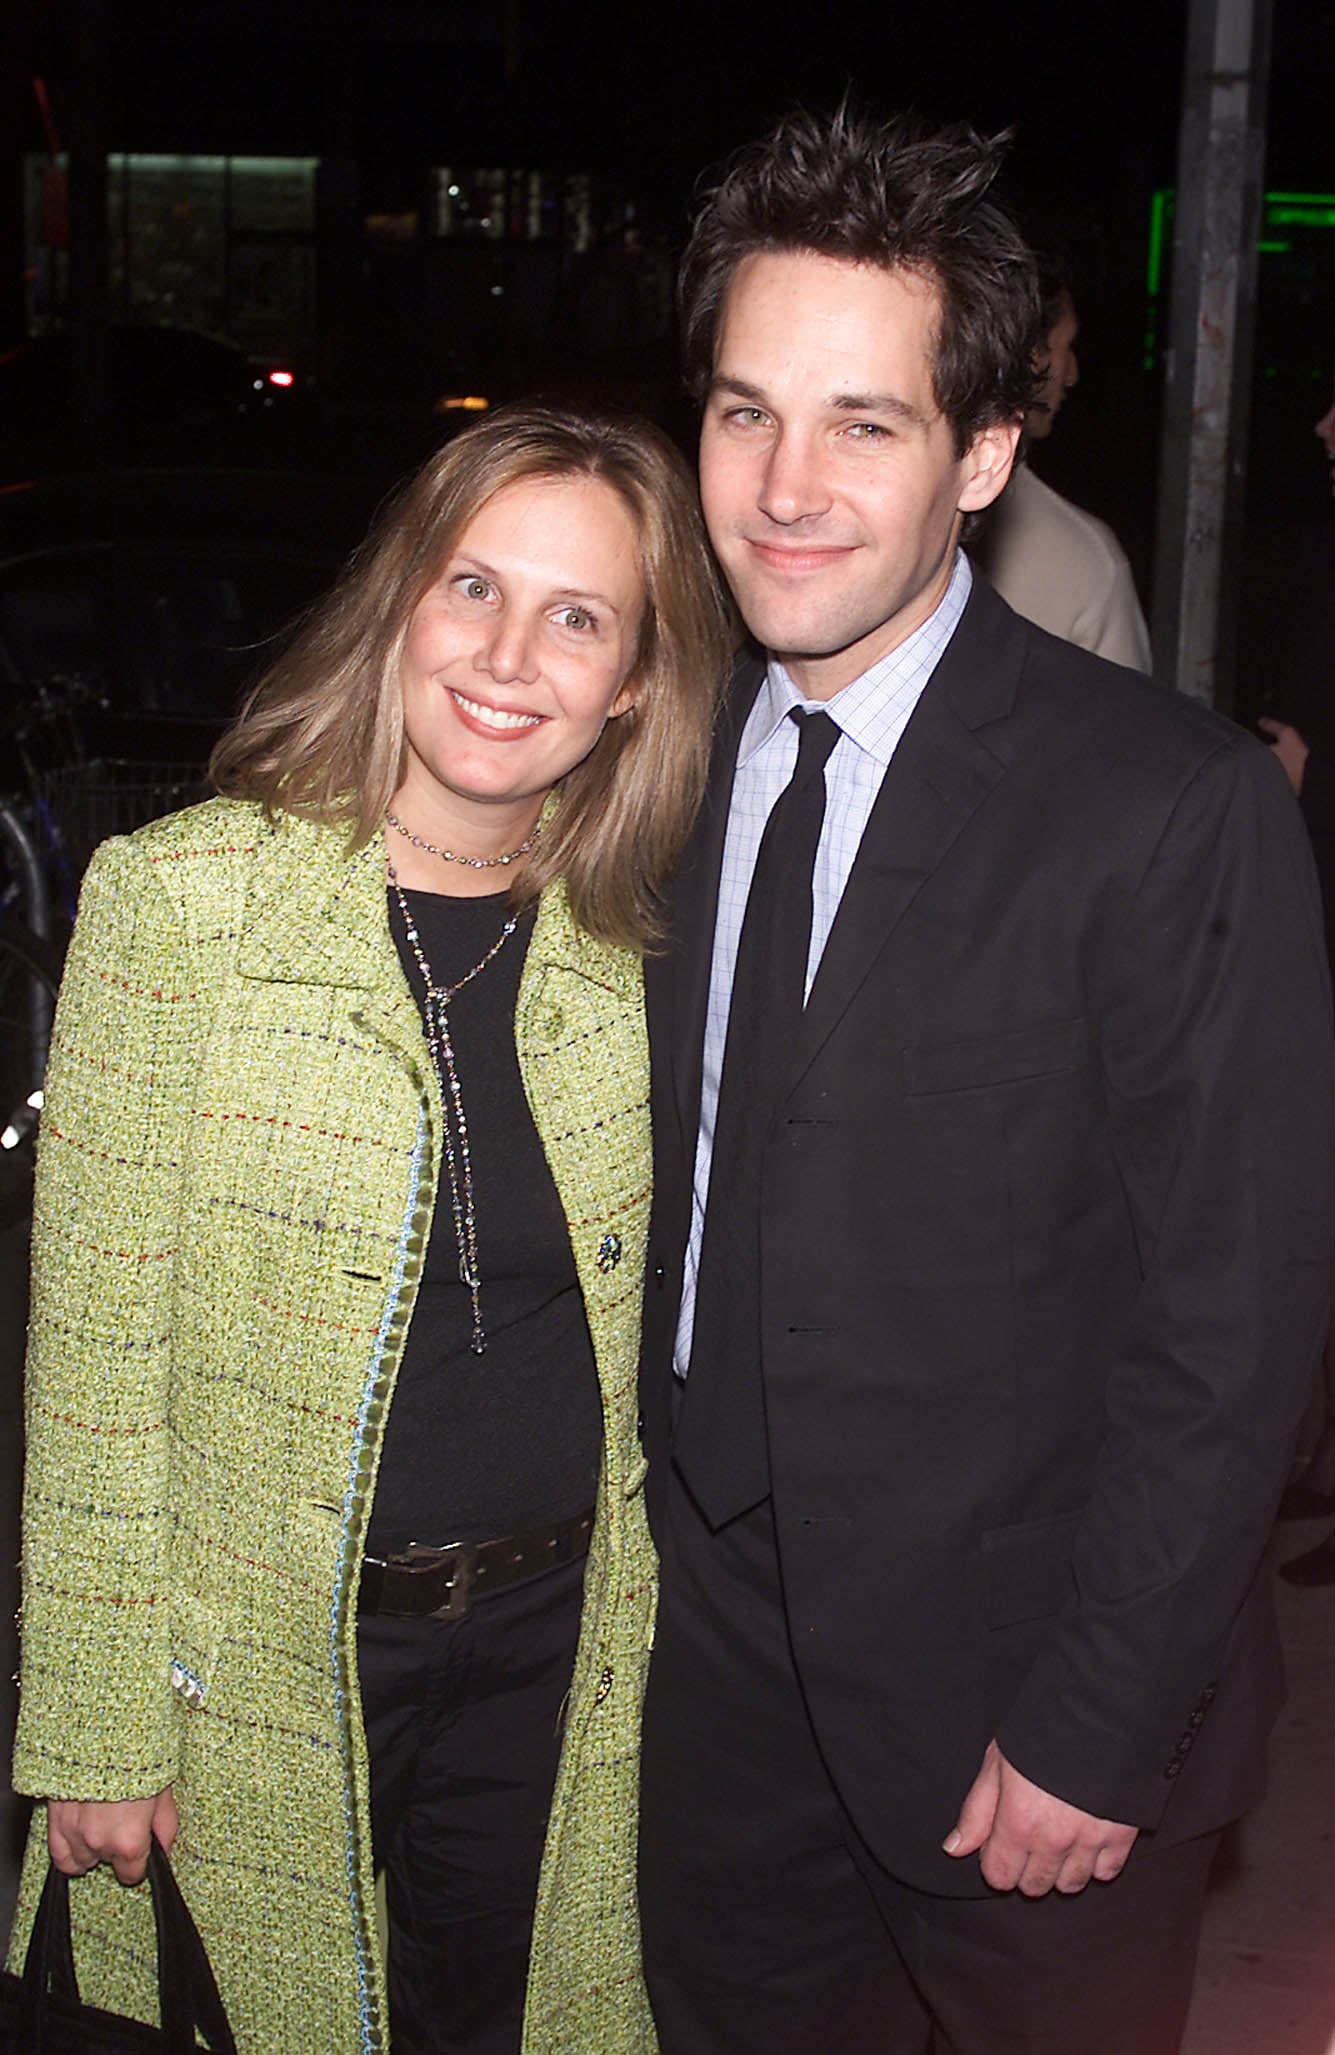 Pictures Of Paul Rudd And His Wife Julie Yaeger Popsugar Celebrity